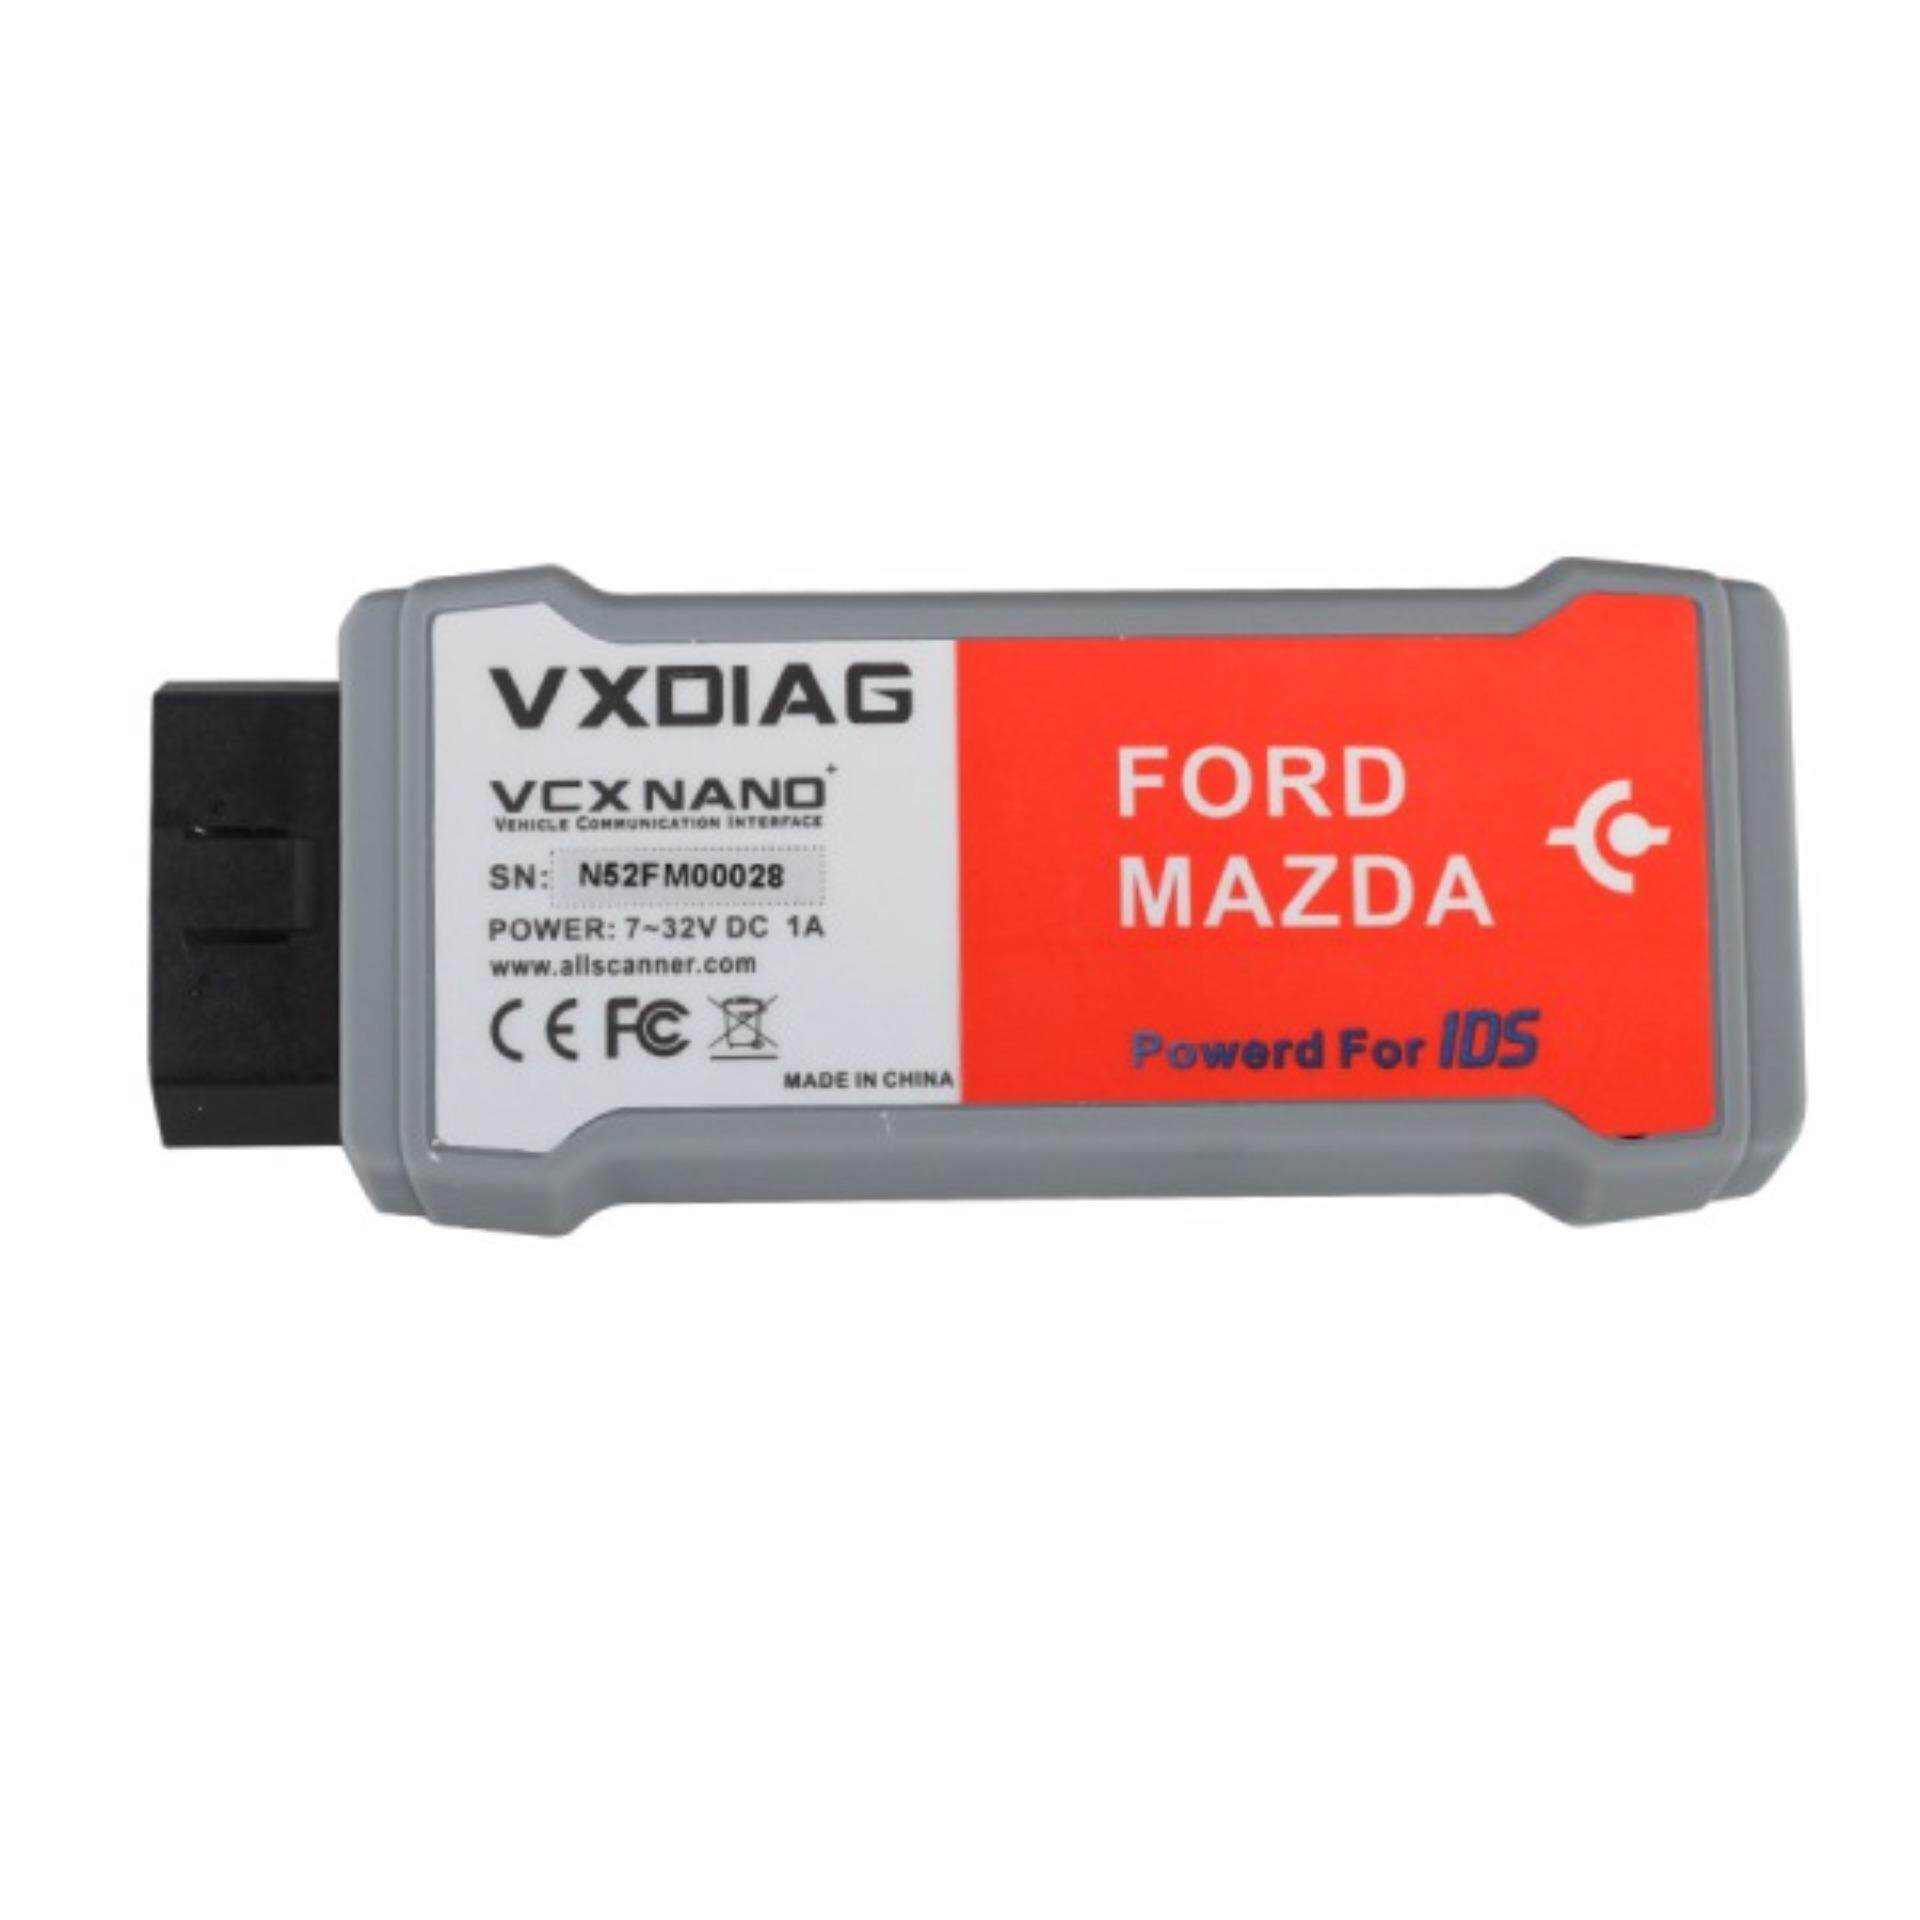 VXDIAG VCX NANO for Ford/Mazda 2 in 1 with IDS